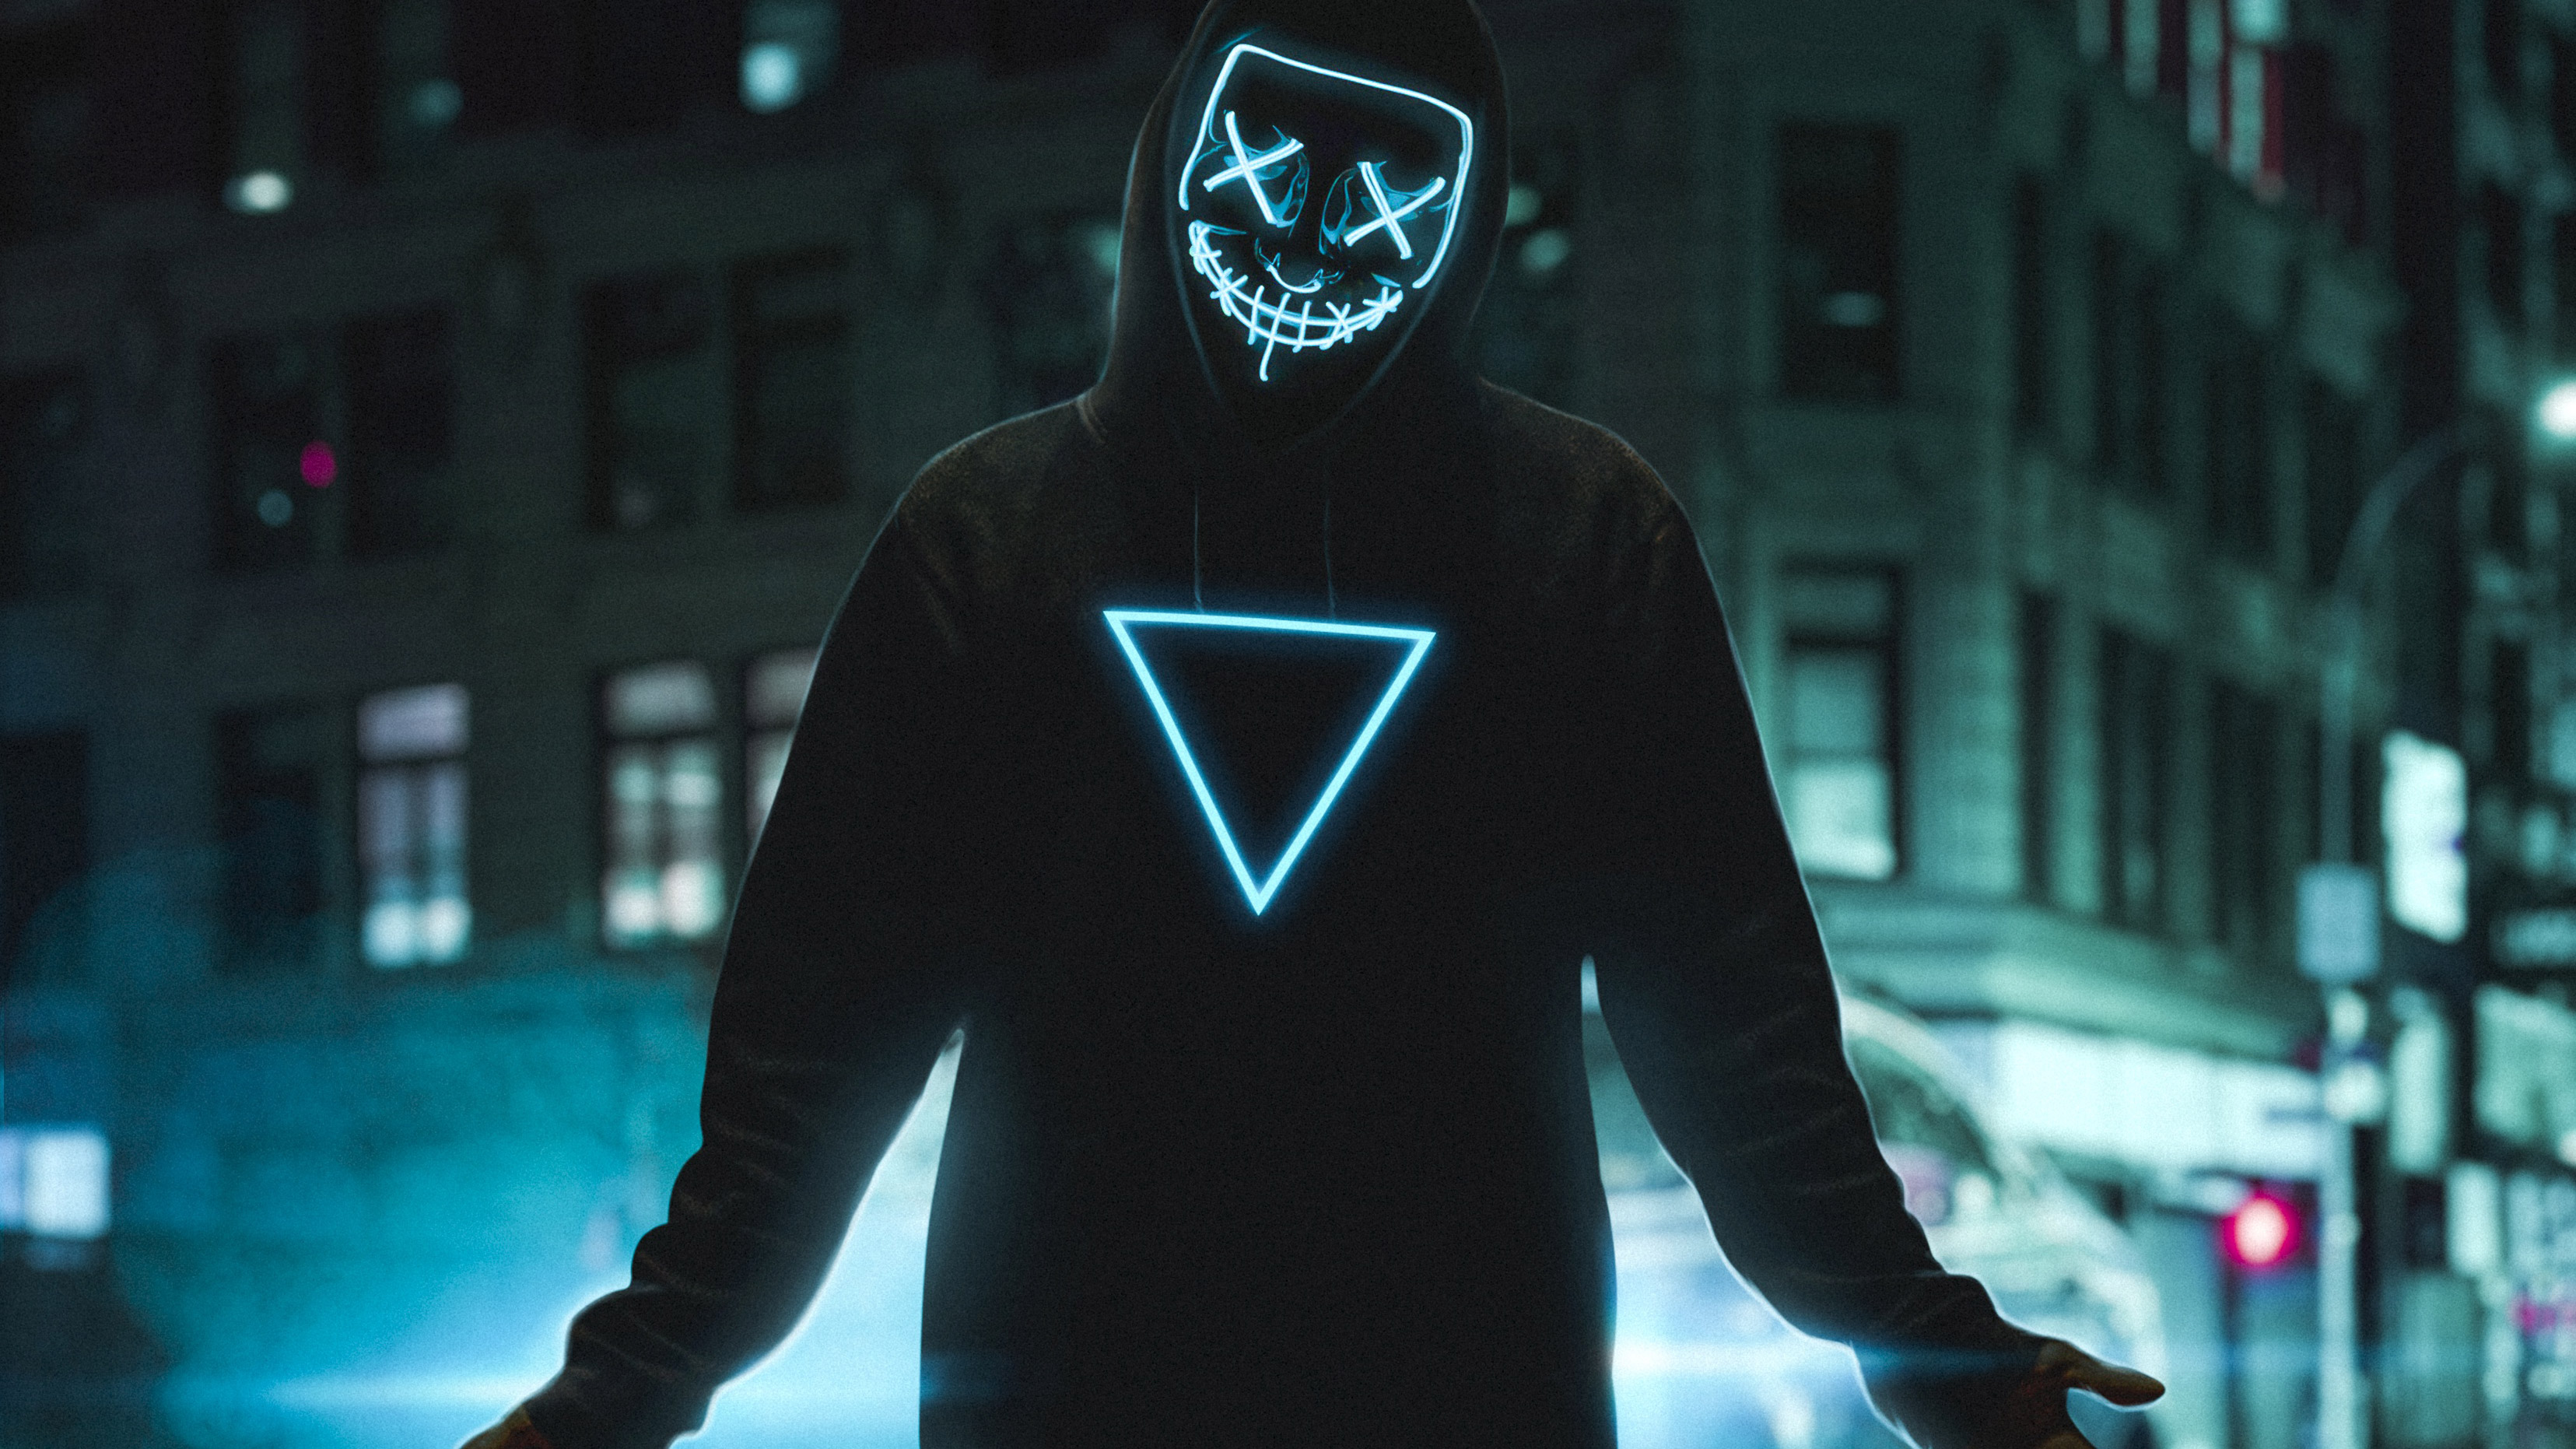 1920x1080 Neon Mask Boy 4k Laptop Full Hd 1080p Hd 4k Wallpapers Images Backgrounds Photos And Pictures